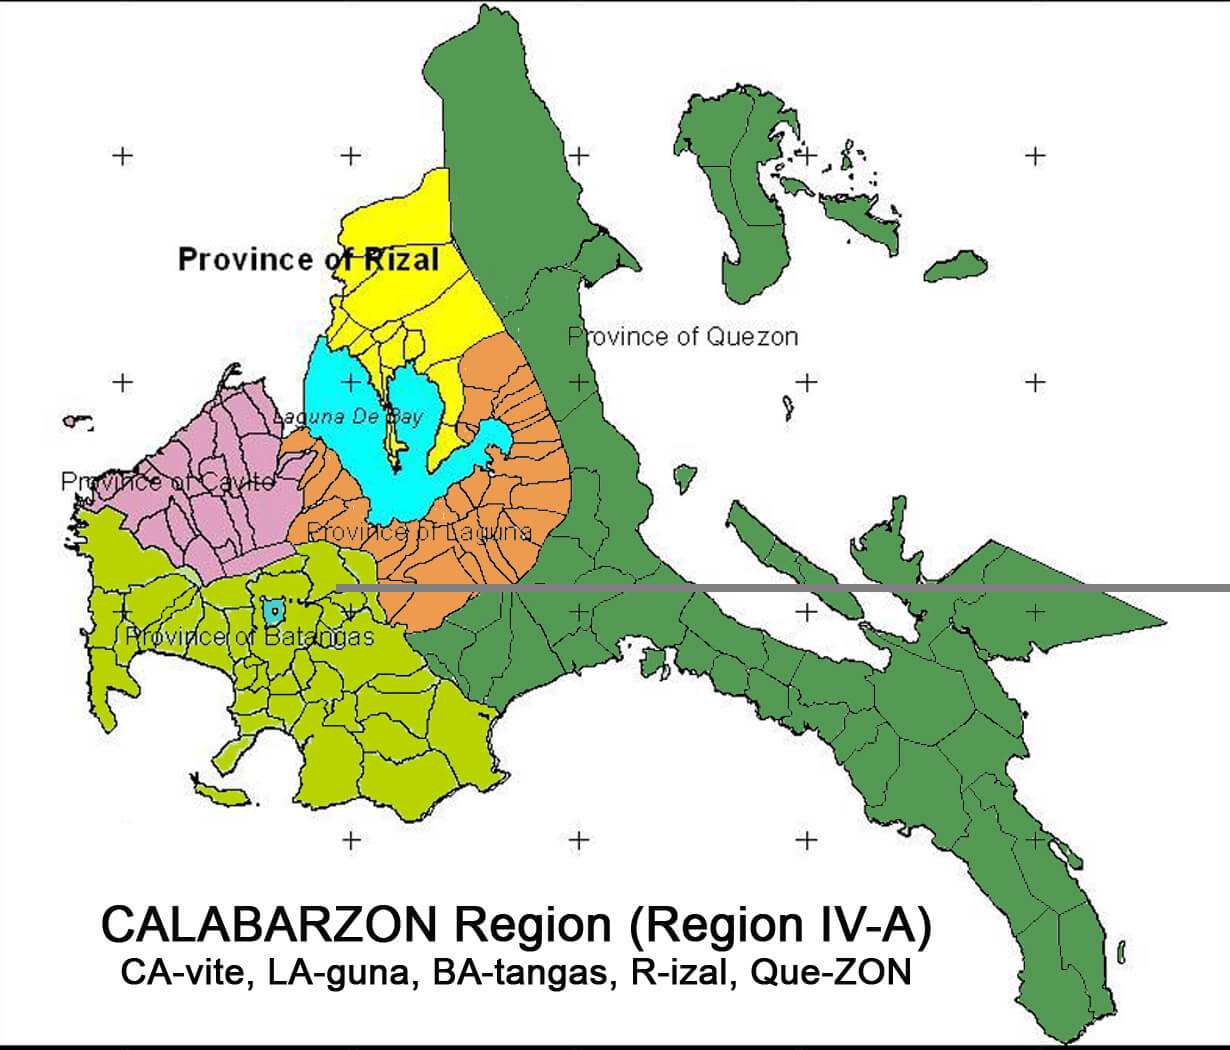 Rizal Is One Of The Philippines First Class Provinces That Belongs To  CALABARZON (CA Vite, LA Guna, BA Tangas, R Izal, Que ZON) Region Or Region  IV A In The ...